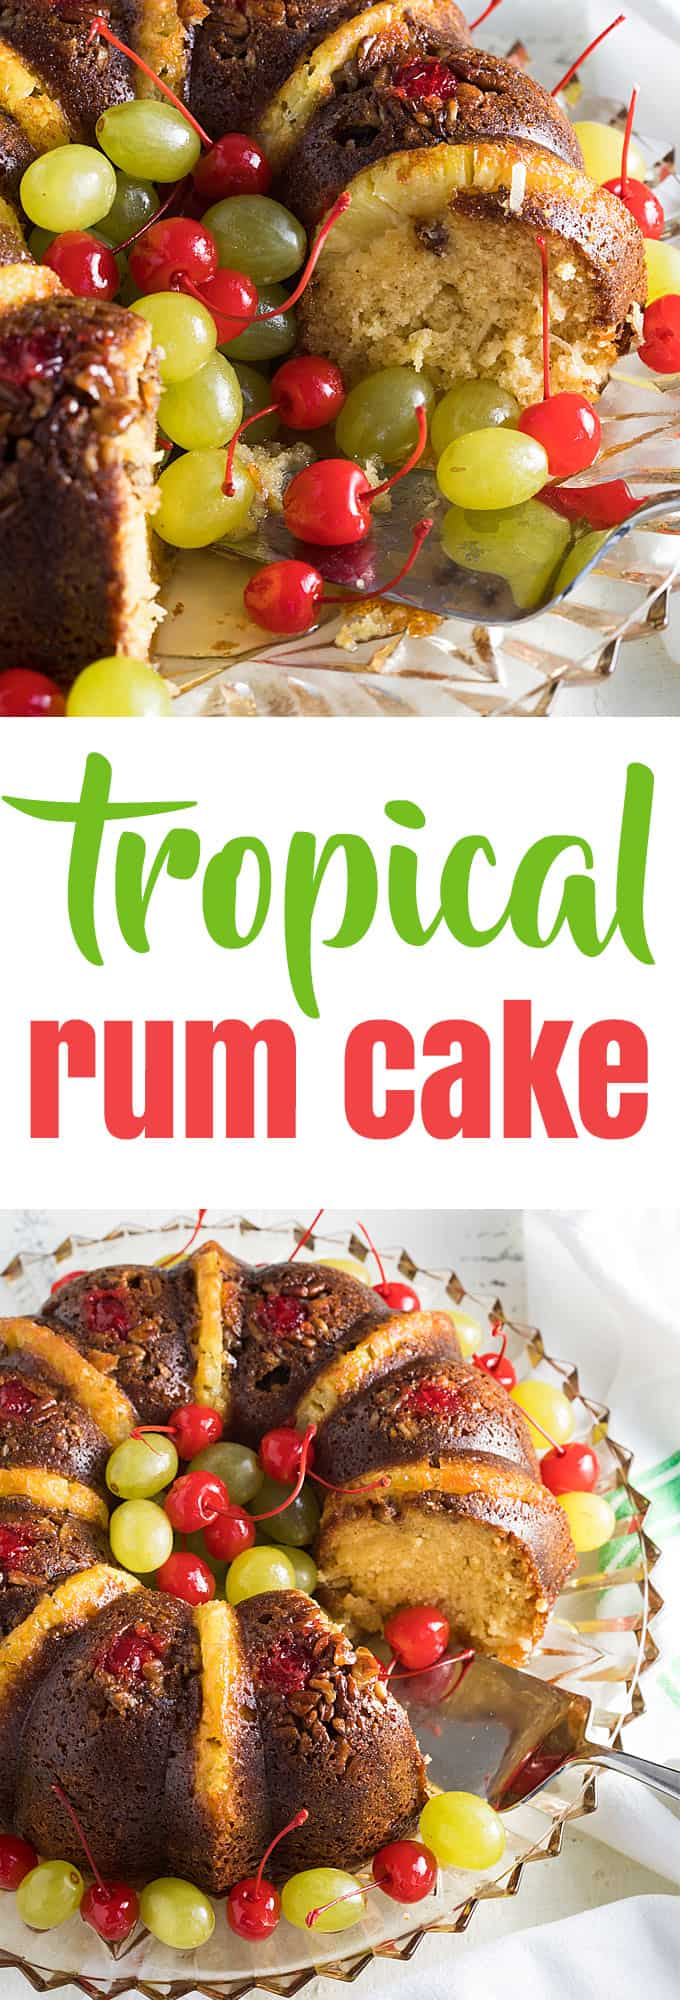 A two image vertical collage of tropical rum cake with overlay text in the center.